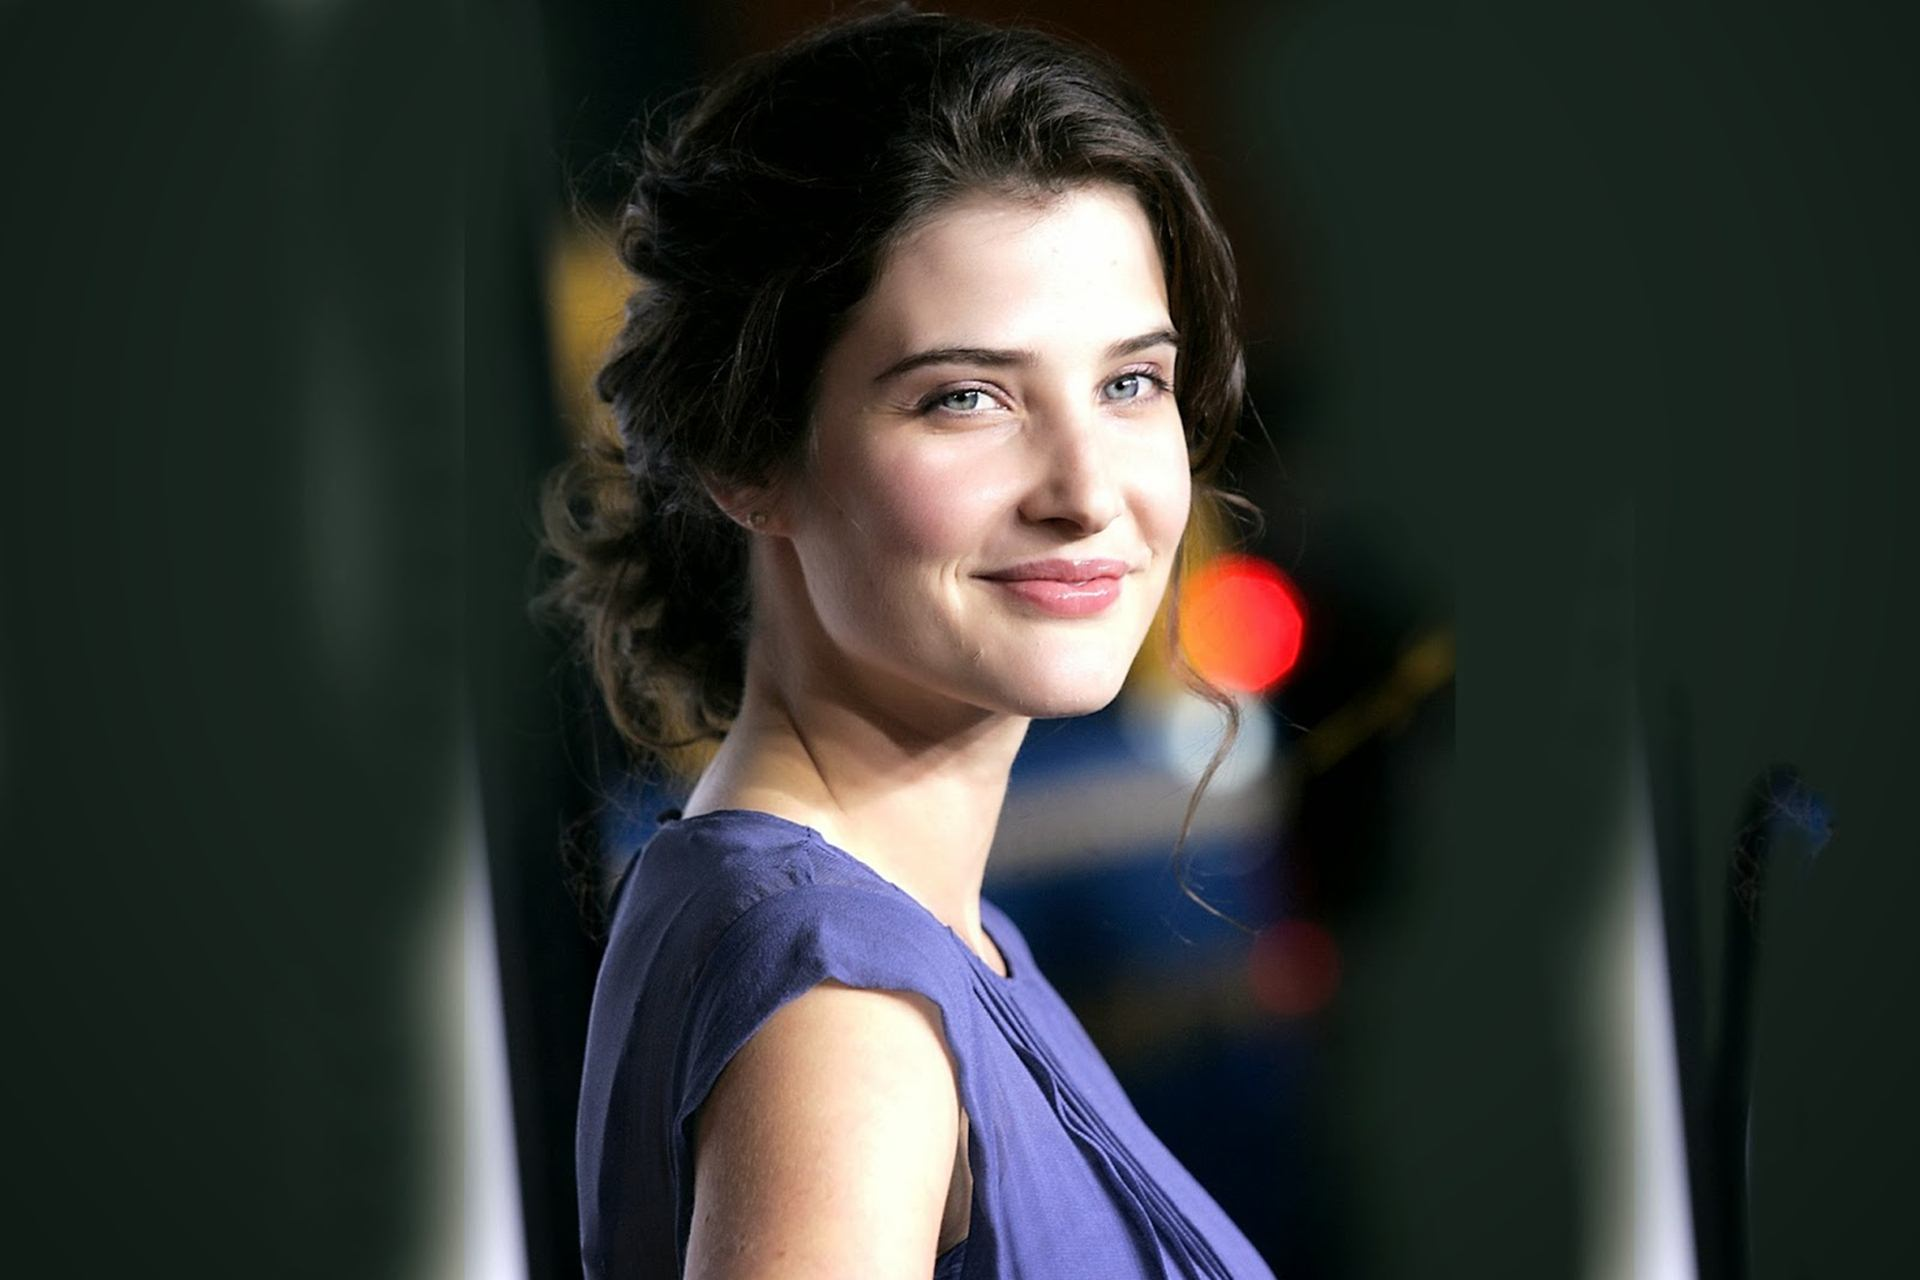 Cobie smulders actress wallpaper